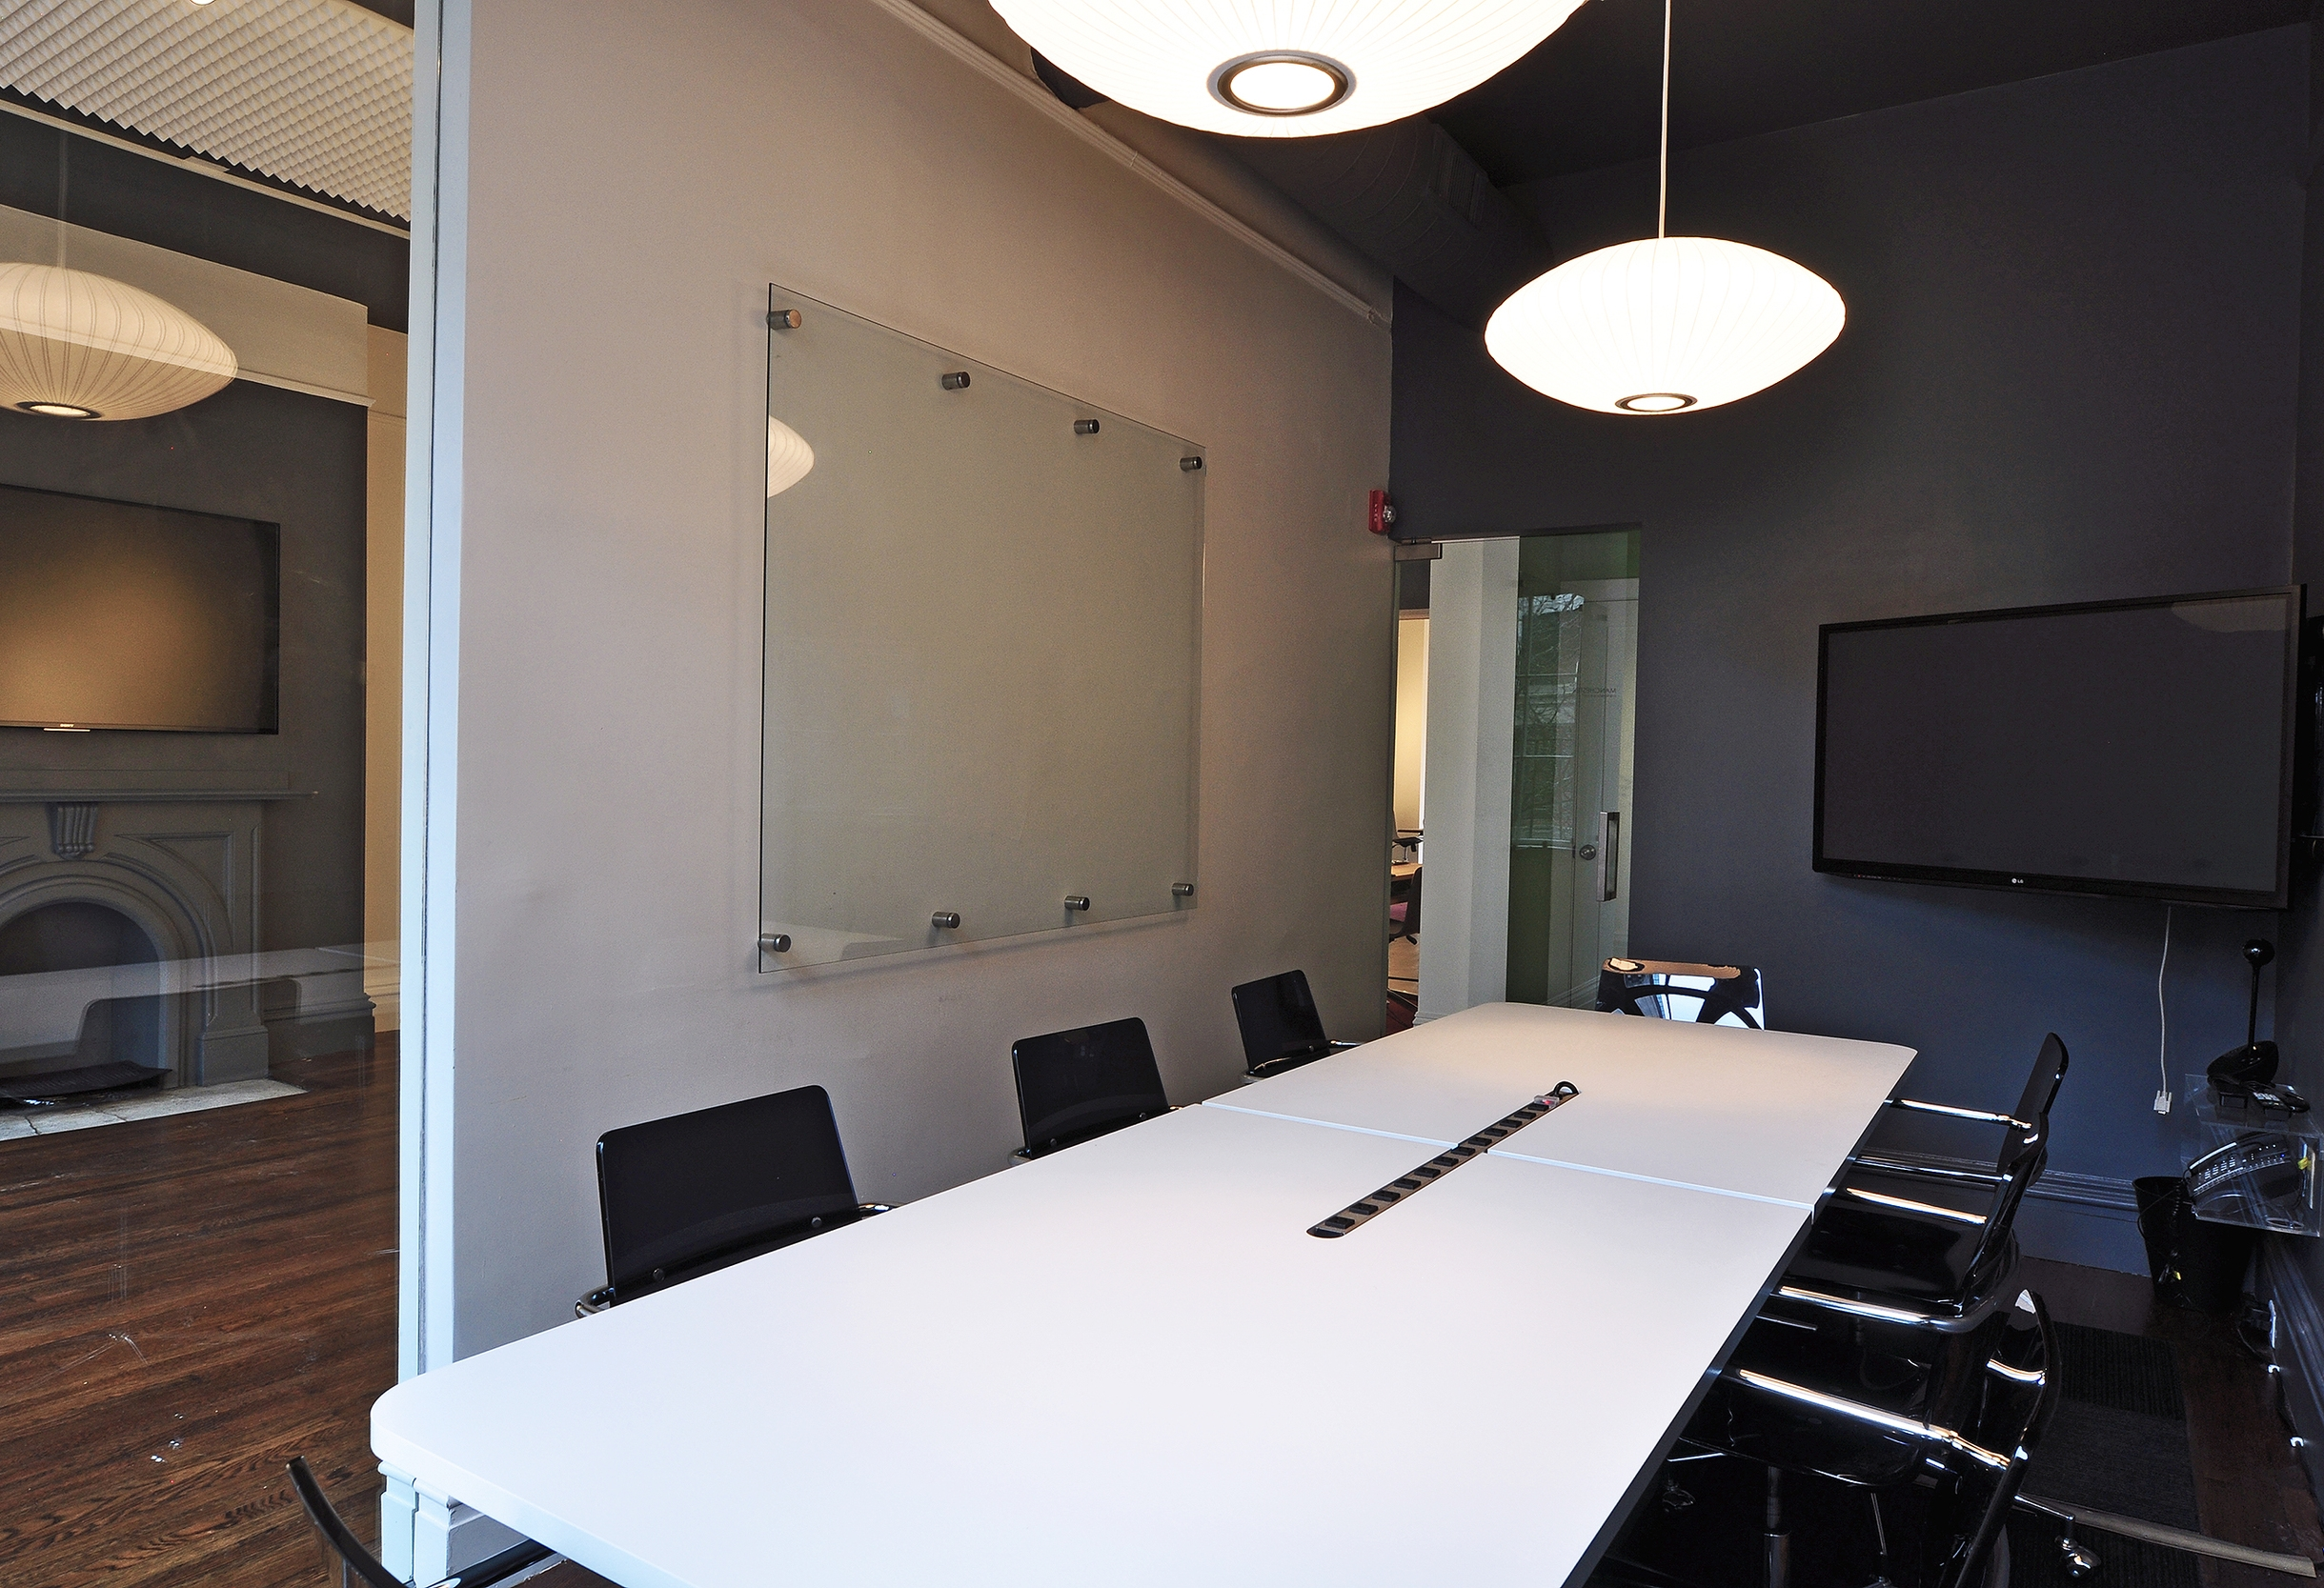 MANCHESTER   (Capacity 8 people)   $80 per hour / $260 half day / $420 full day    Includes:  Monitor, Mark-Up Wall, Direct Phone Line  Make a Reservation:  Call (857) 239-9424 or  Email Us   Payment:  50% to hold reservation, 50% day of meeting  Location:  129 Newbury Street, 2nd Floor ( Map )